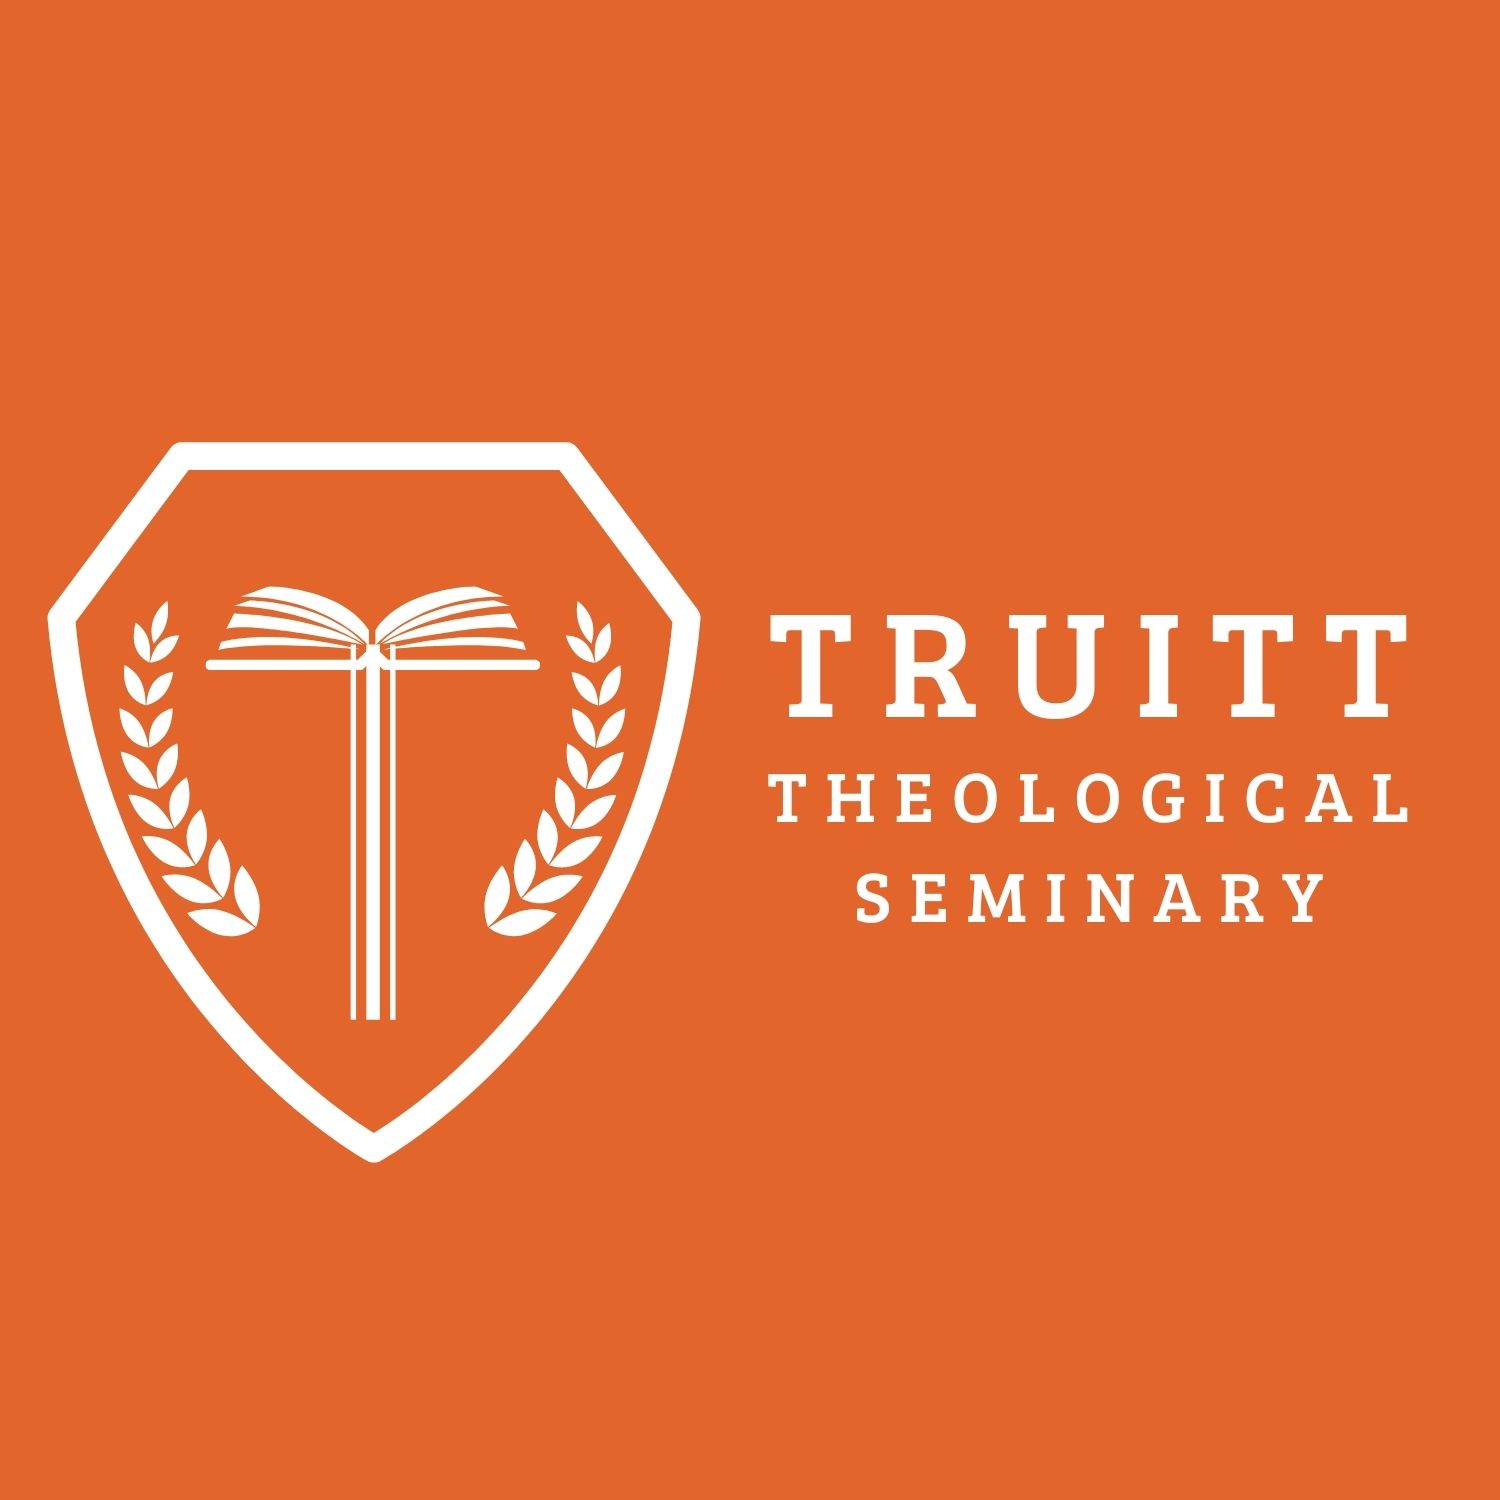 Truitt Theological Seminary